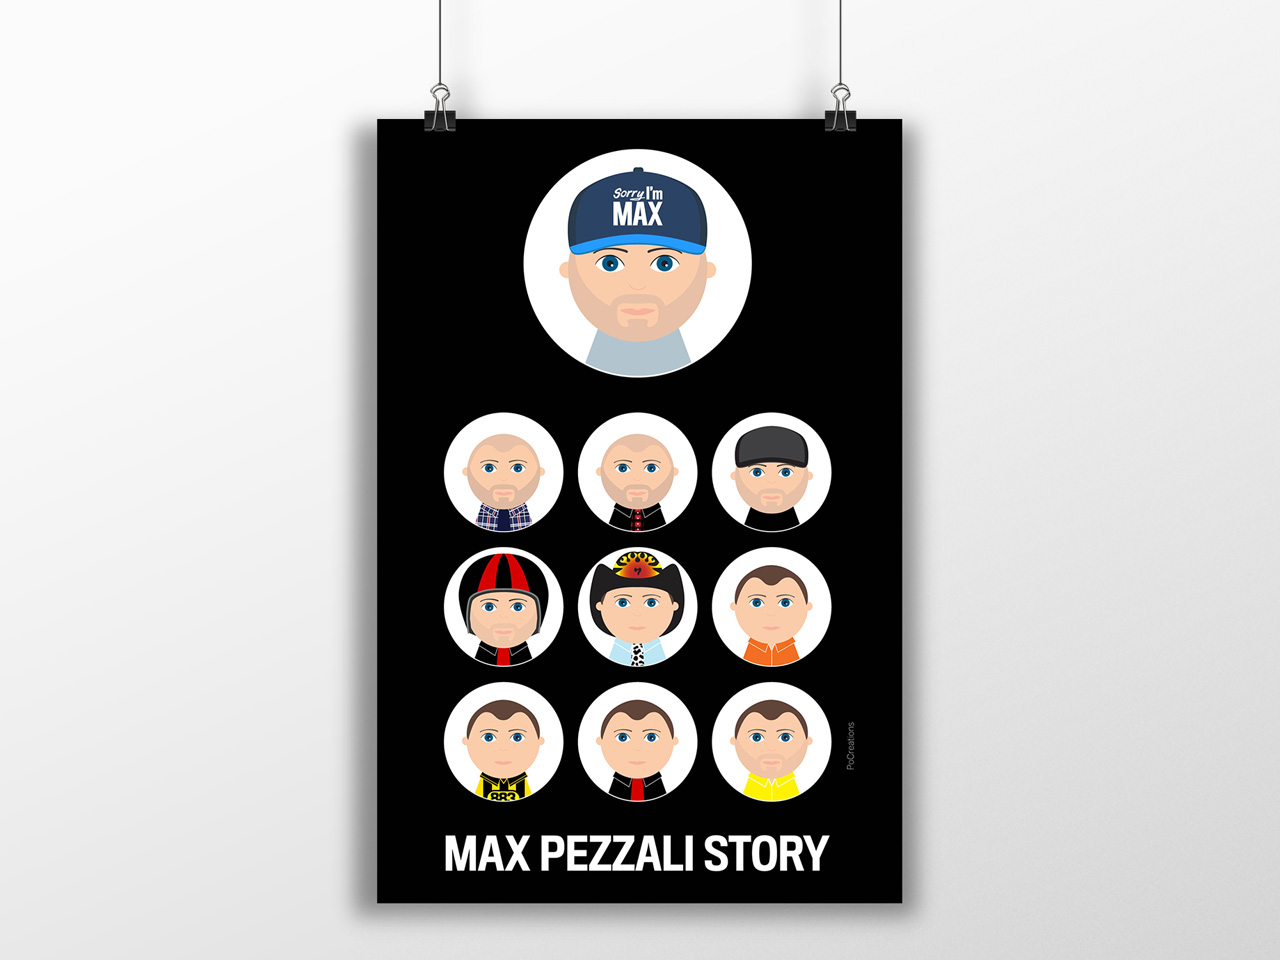 a story about max Here is a collection of my very short stories, suitable for all ages each story has a maximum of 300 words and was written for a flash fiction contest.